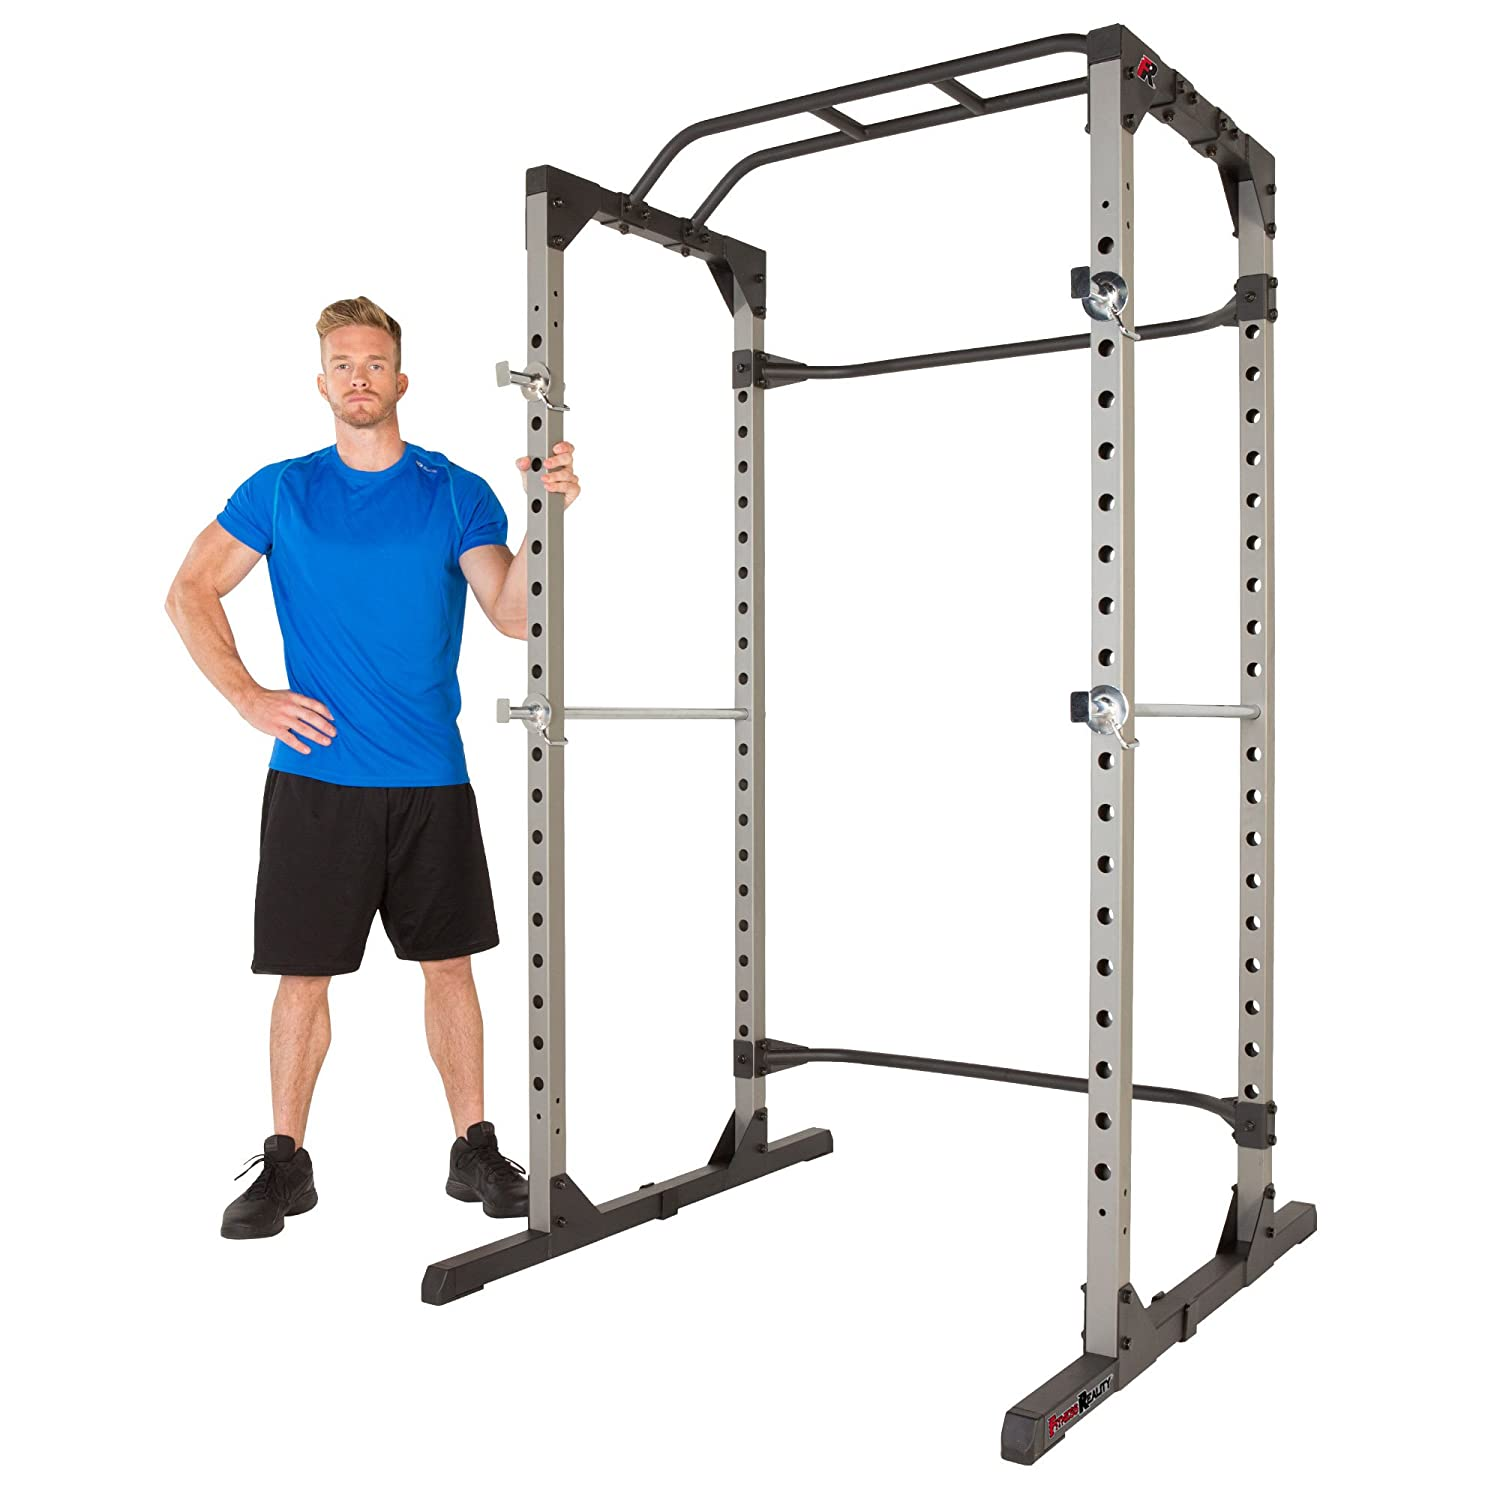 Fitness Reality 810XLT Rack Review